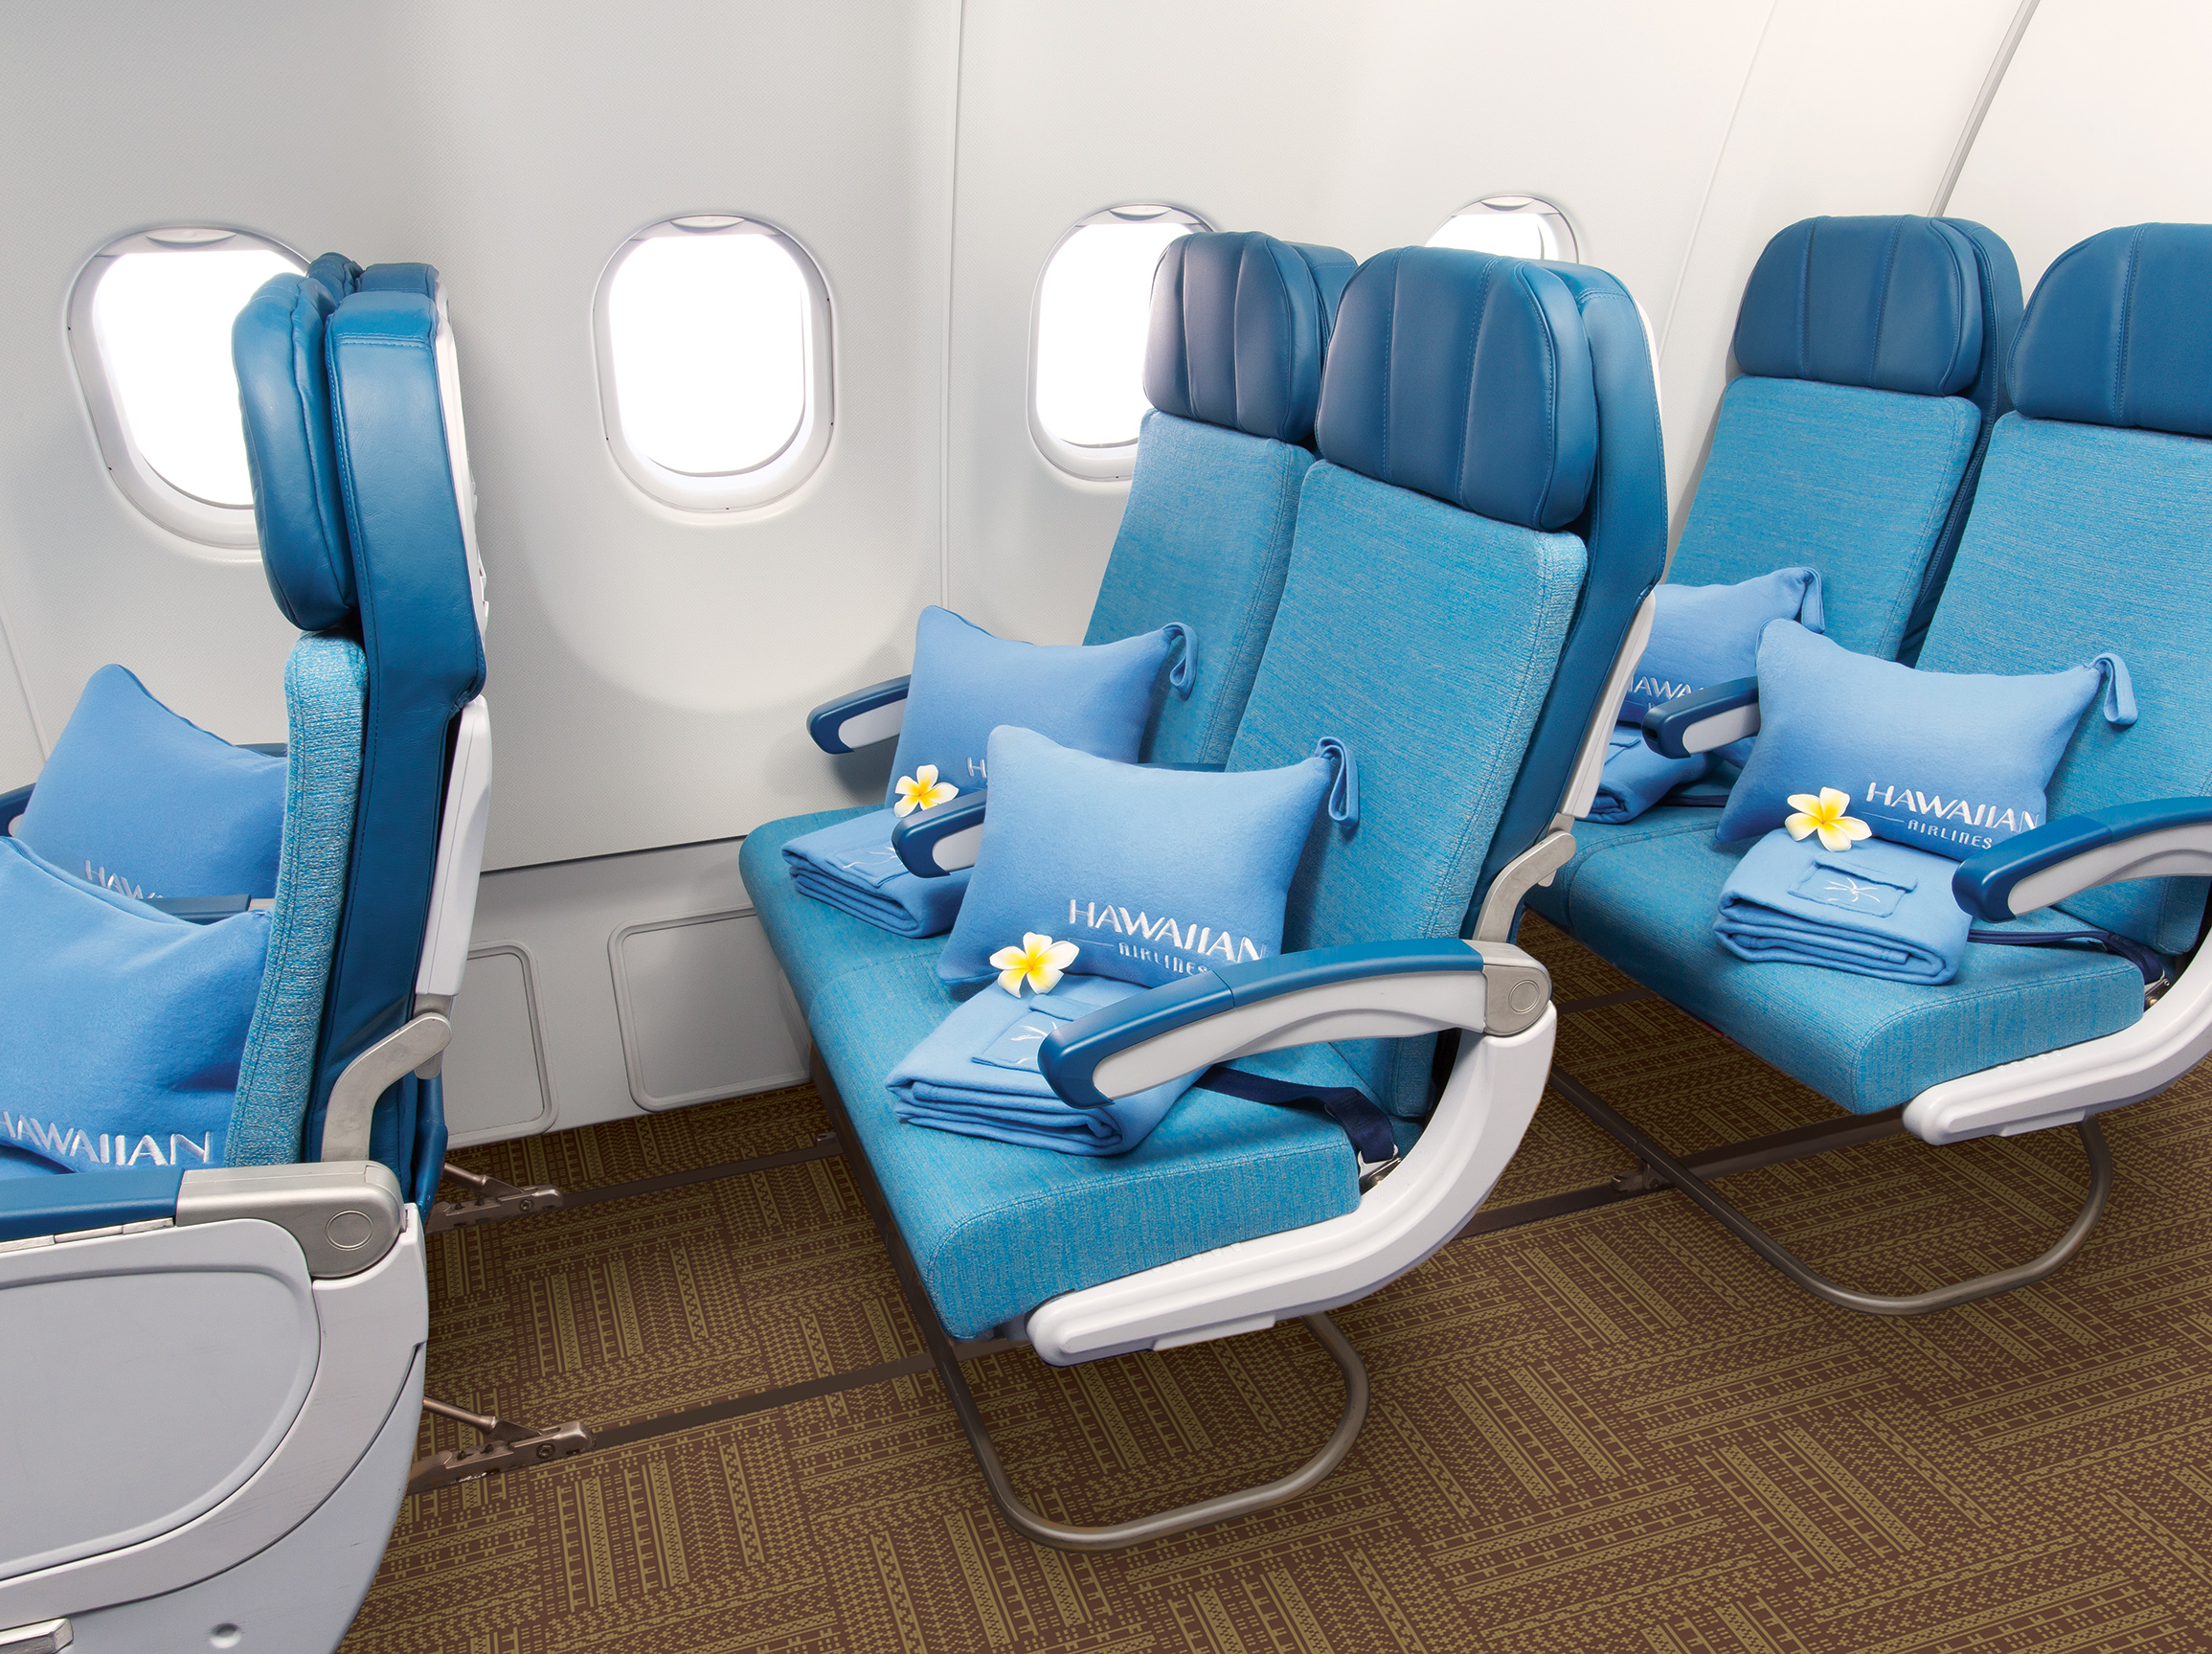 Hawaiian Airlines Announce Extra fort Economy Seating